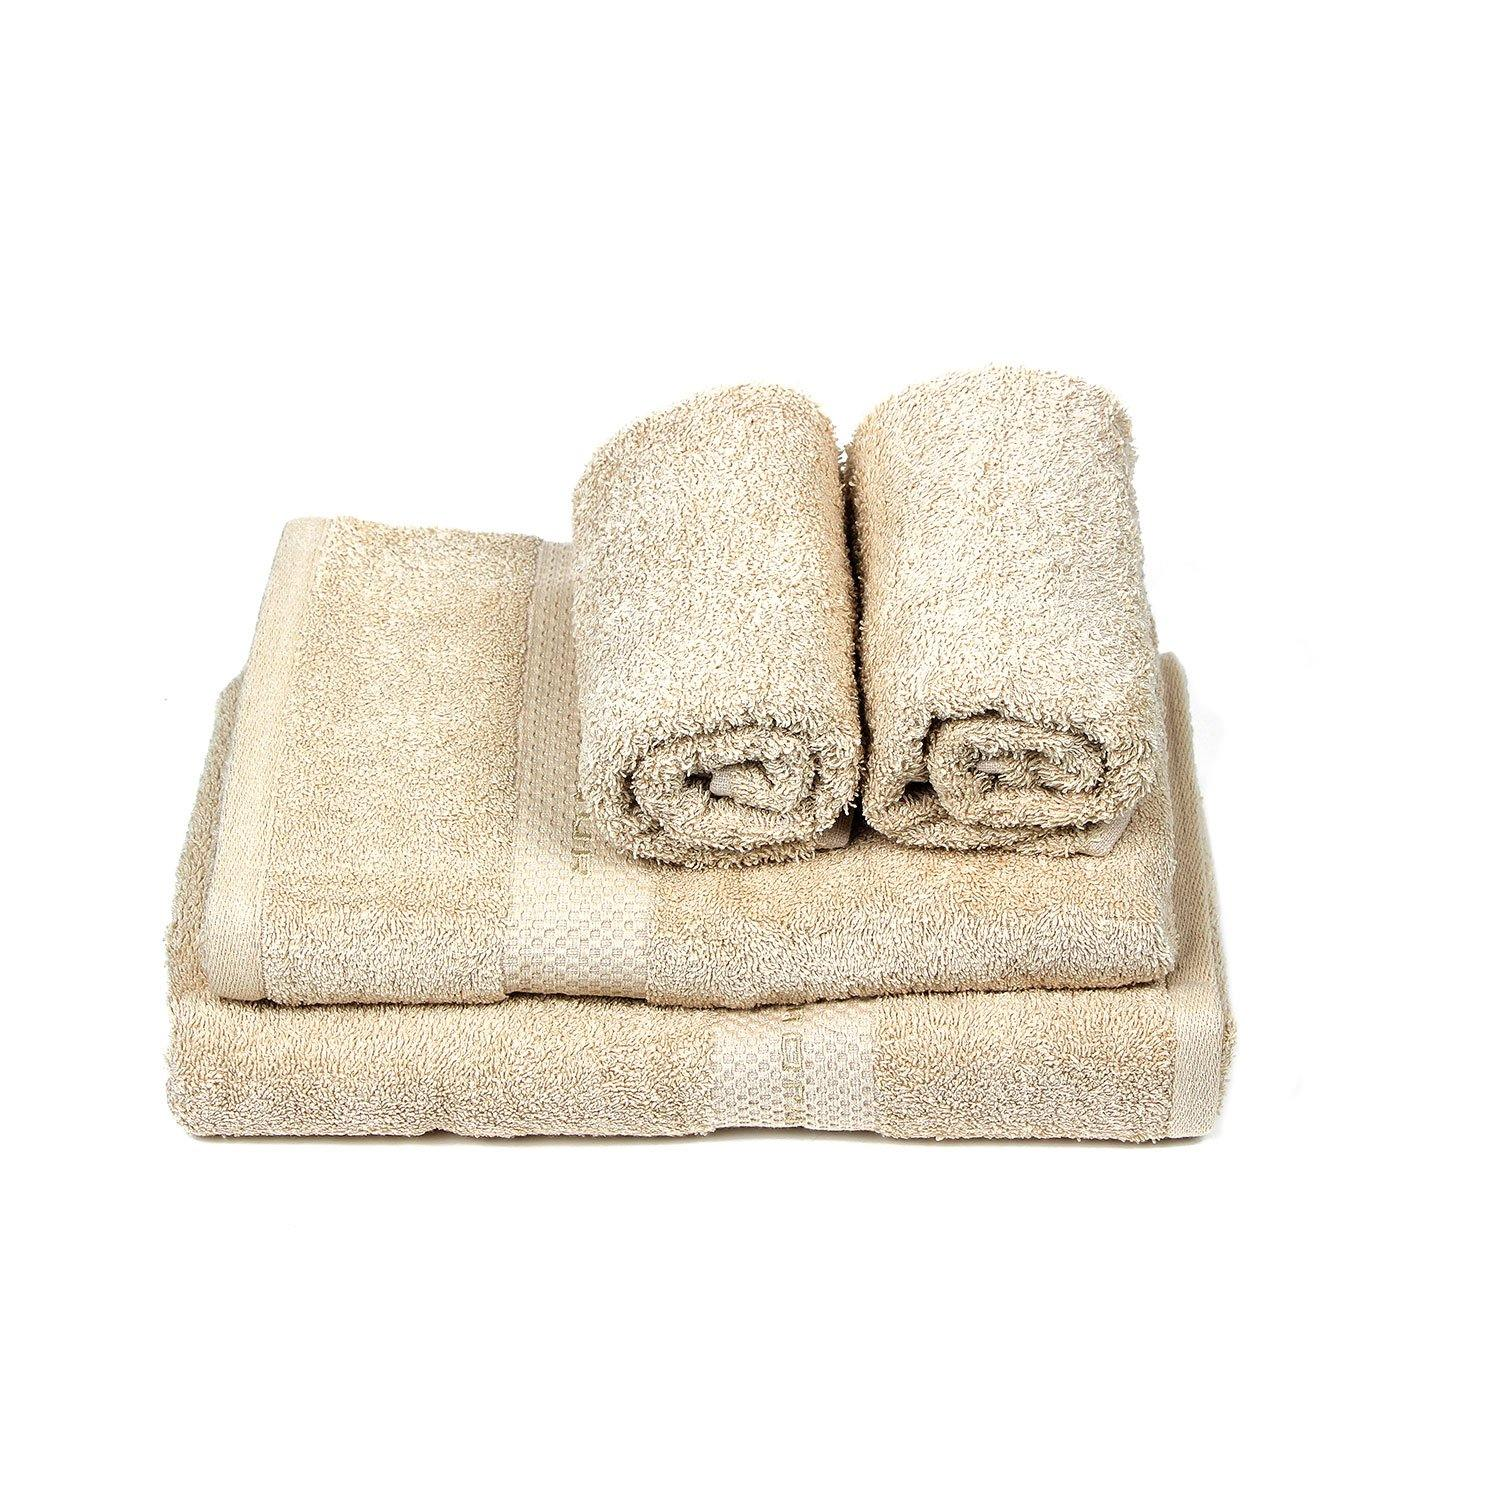 Skin Towel Set For Family-Pack Of 4